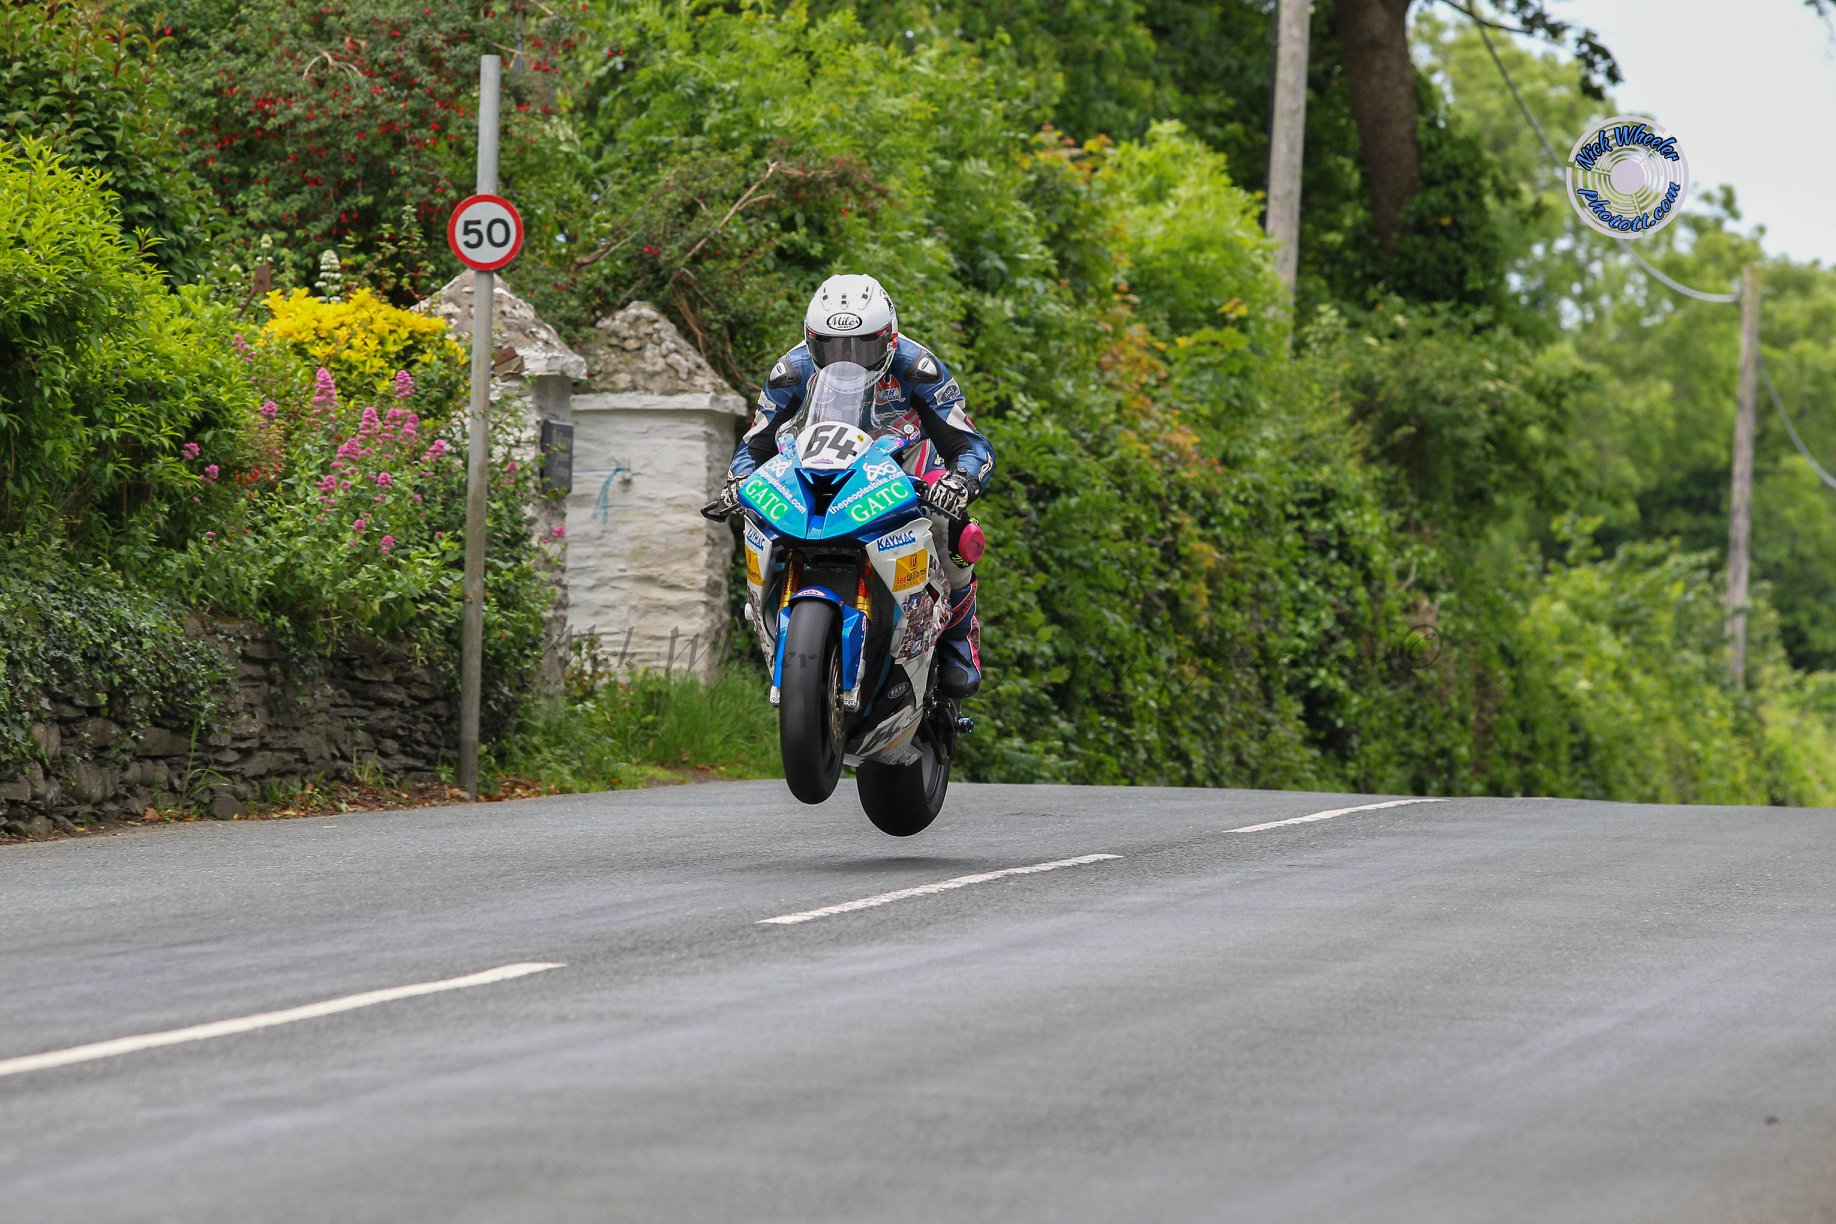 TT 2020 Latest: Hardisty Confirms BMW Machinery For 1000cc Races